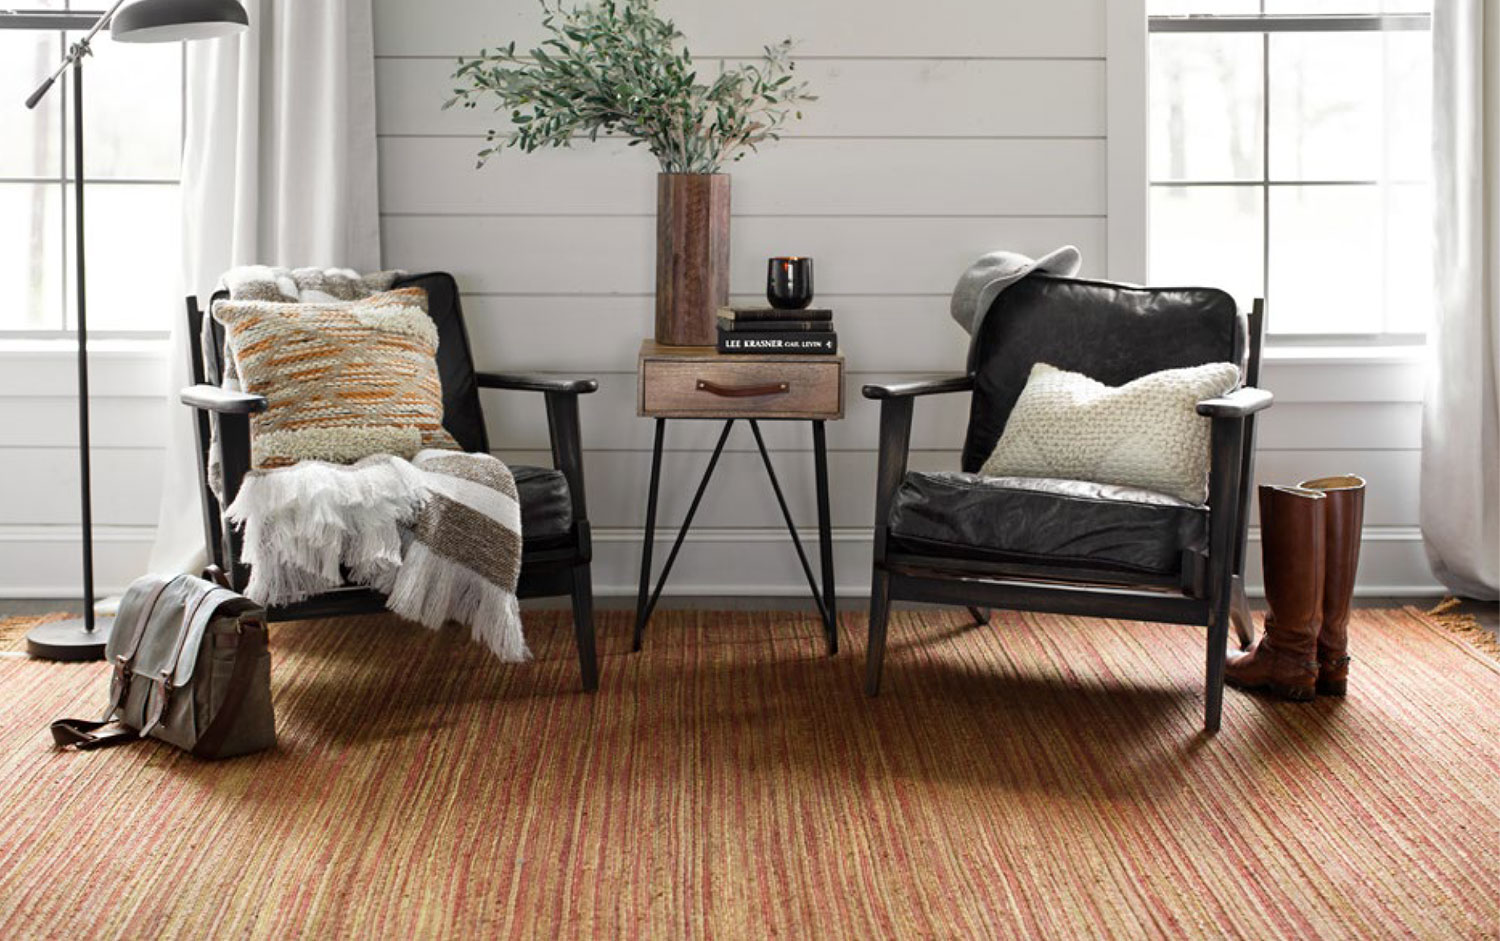 magnolia rugs1 Instant home makeover Magnolia Home Rugs